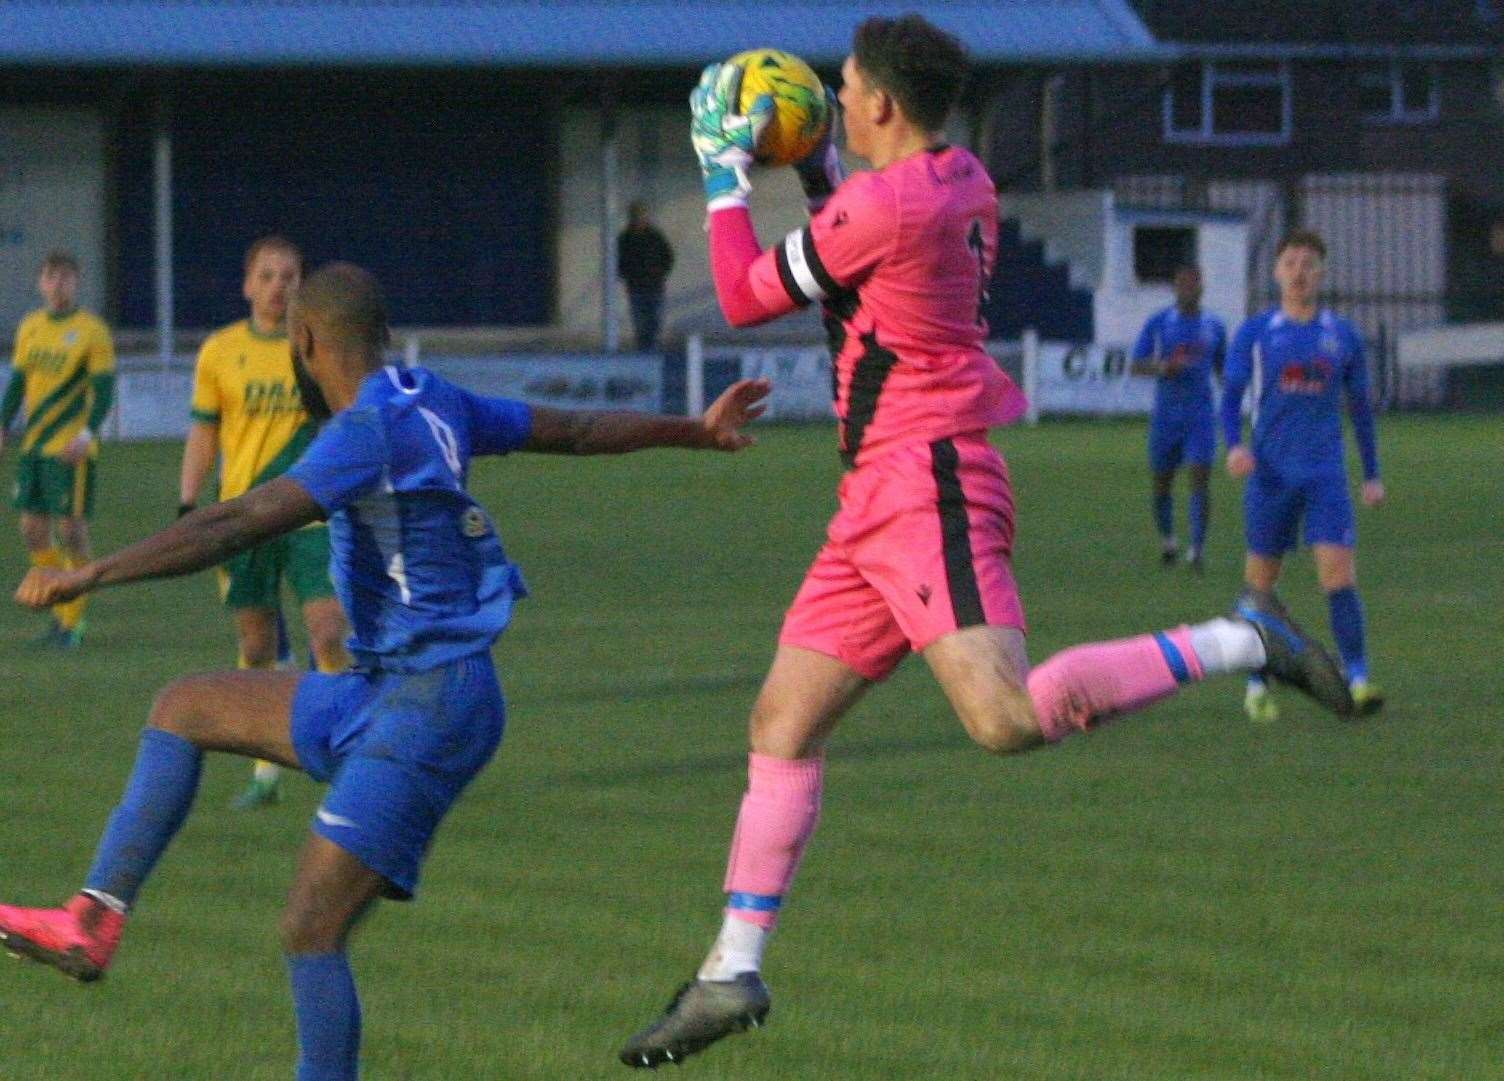 Sam Mott collects the ball against Herne Bay